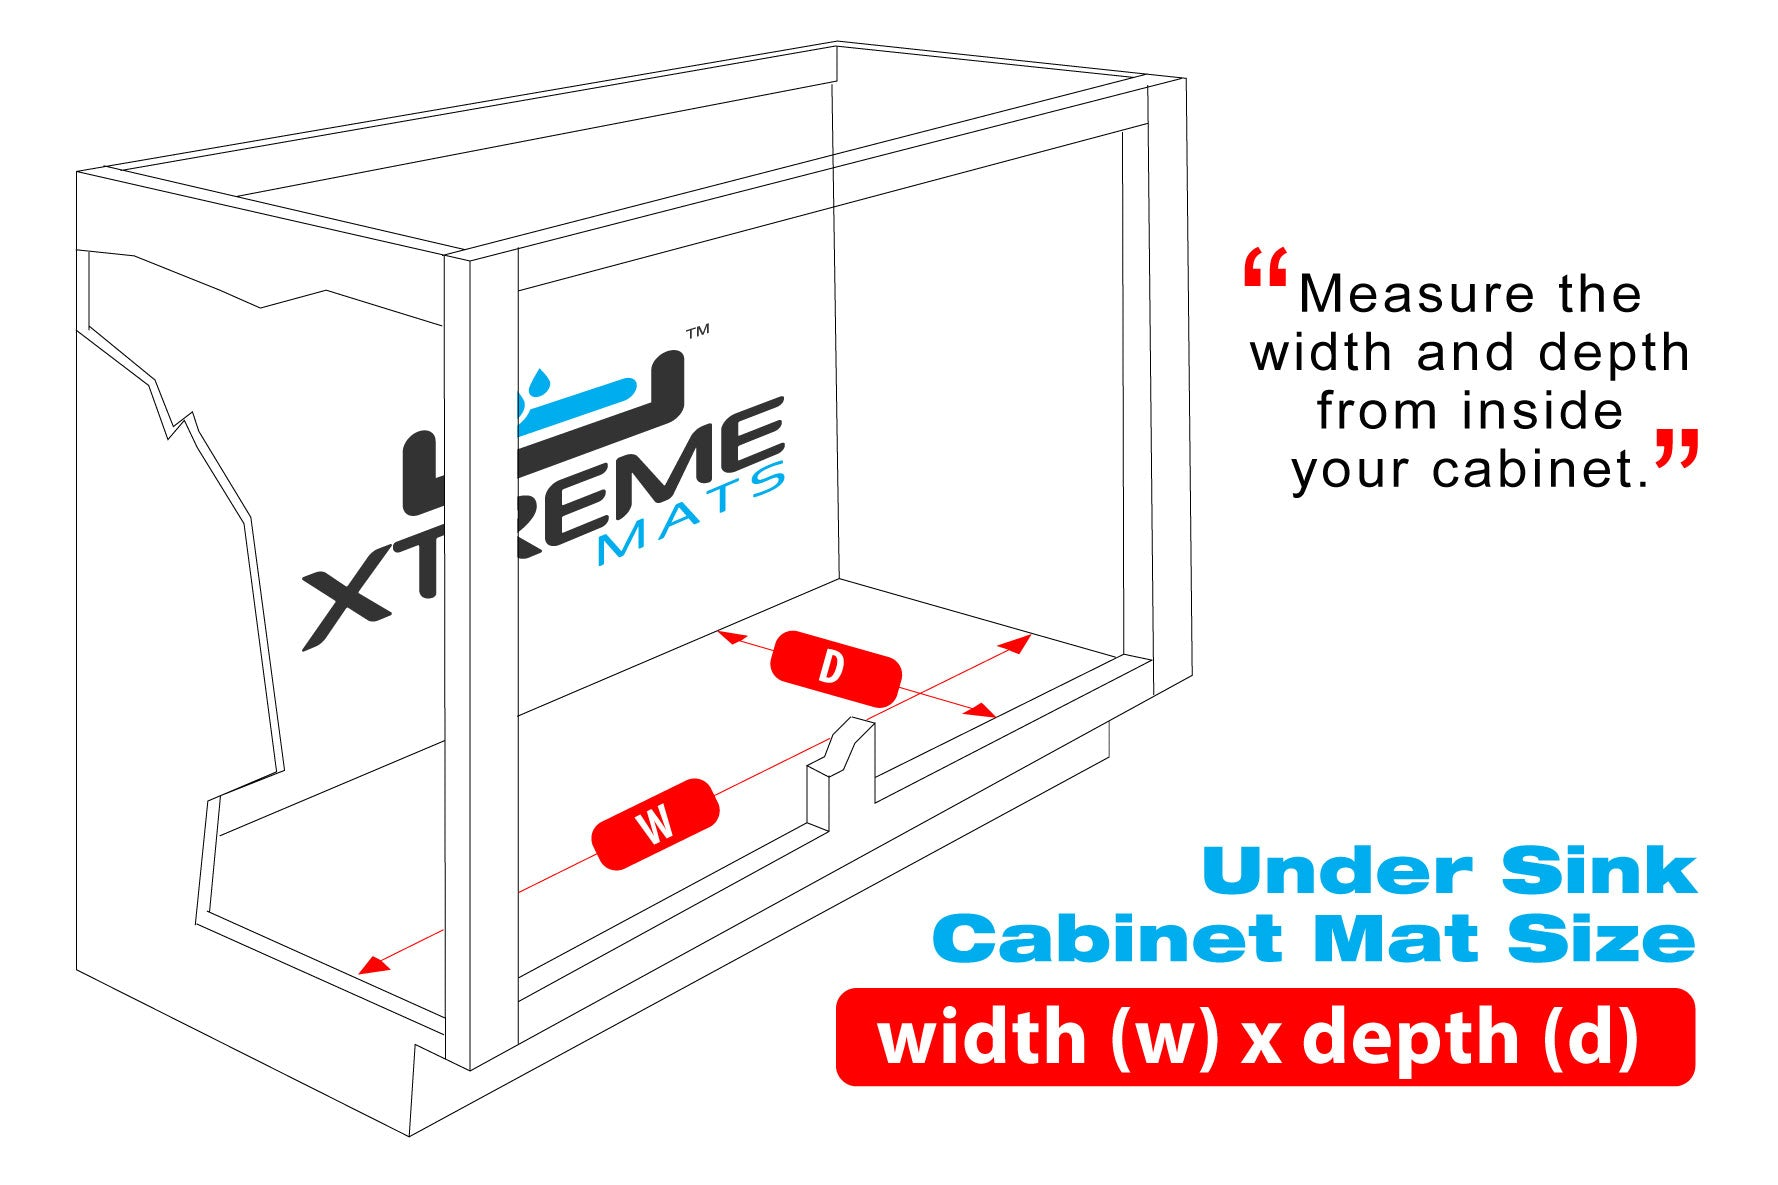 outline of a cabinet with xtreme mats logo